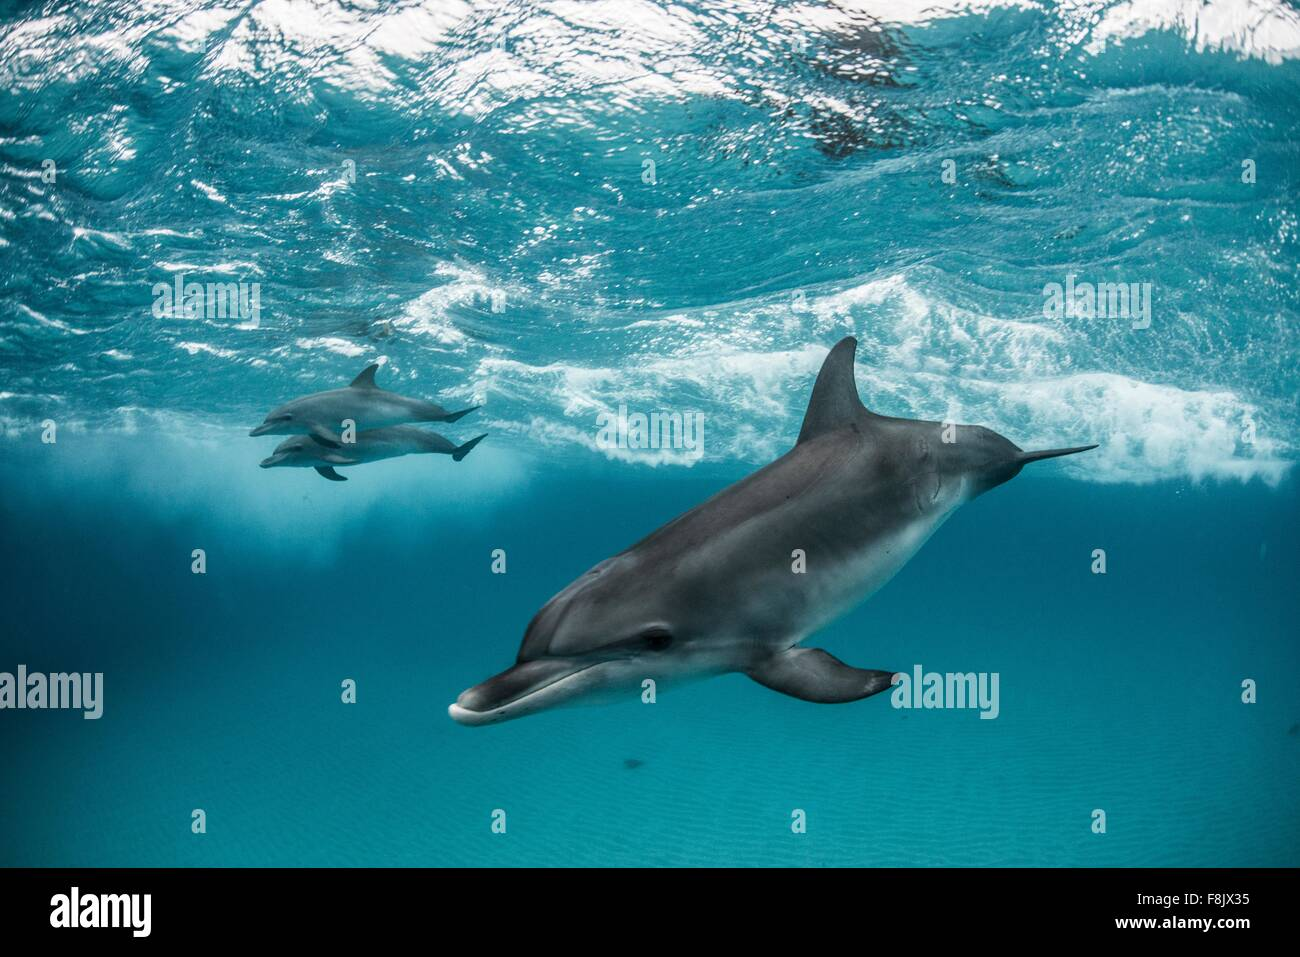 Atlantic spotted dolphins surfing on waves, looking at camera, Northern Bahamas Banks, Bahamas - Stock Image